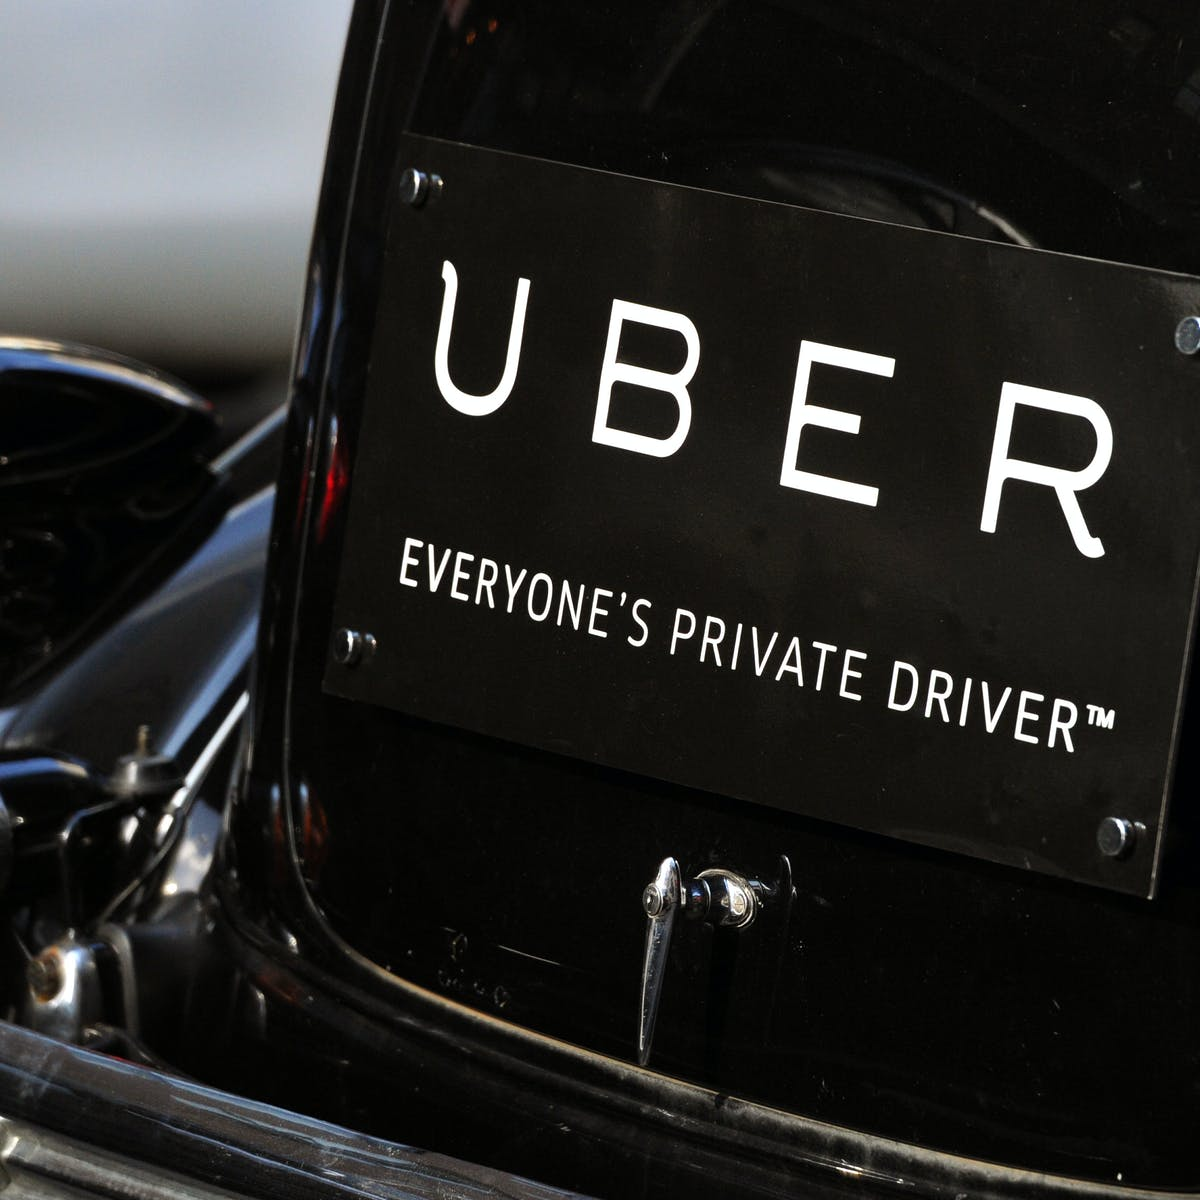 FactCheck: are ridesharing services like Uber no safer than